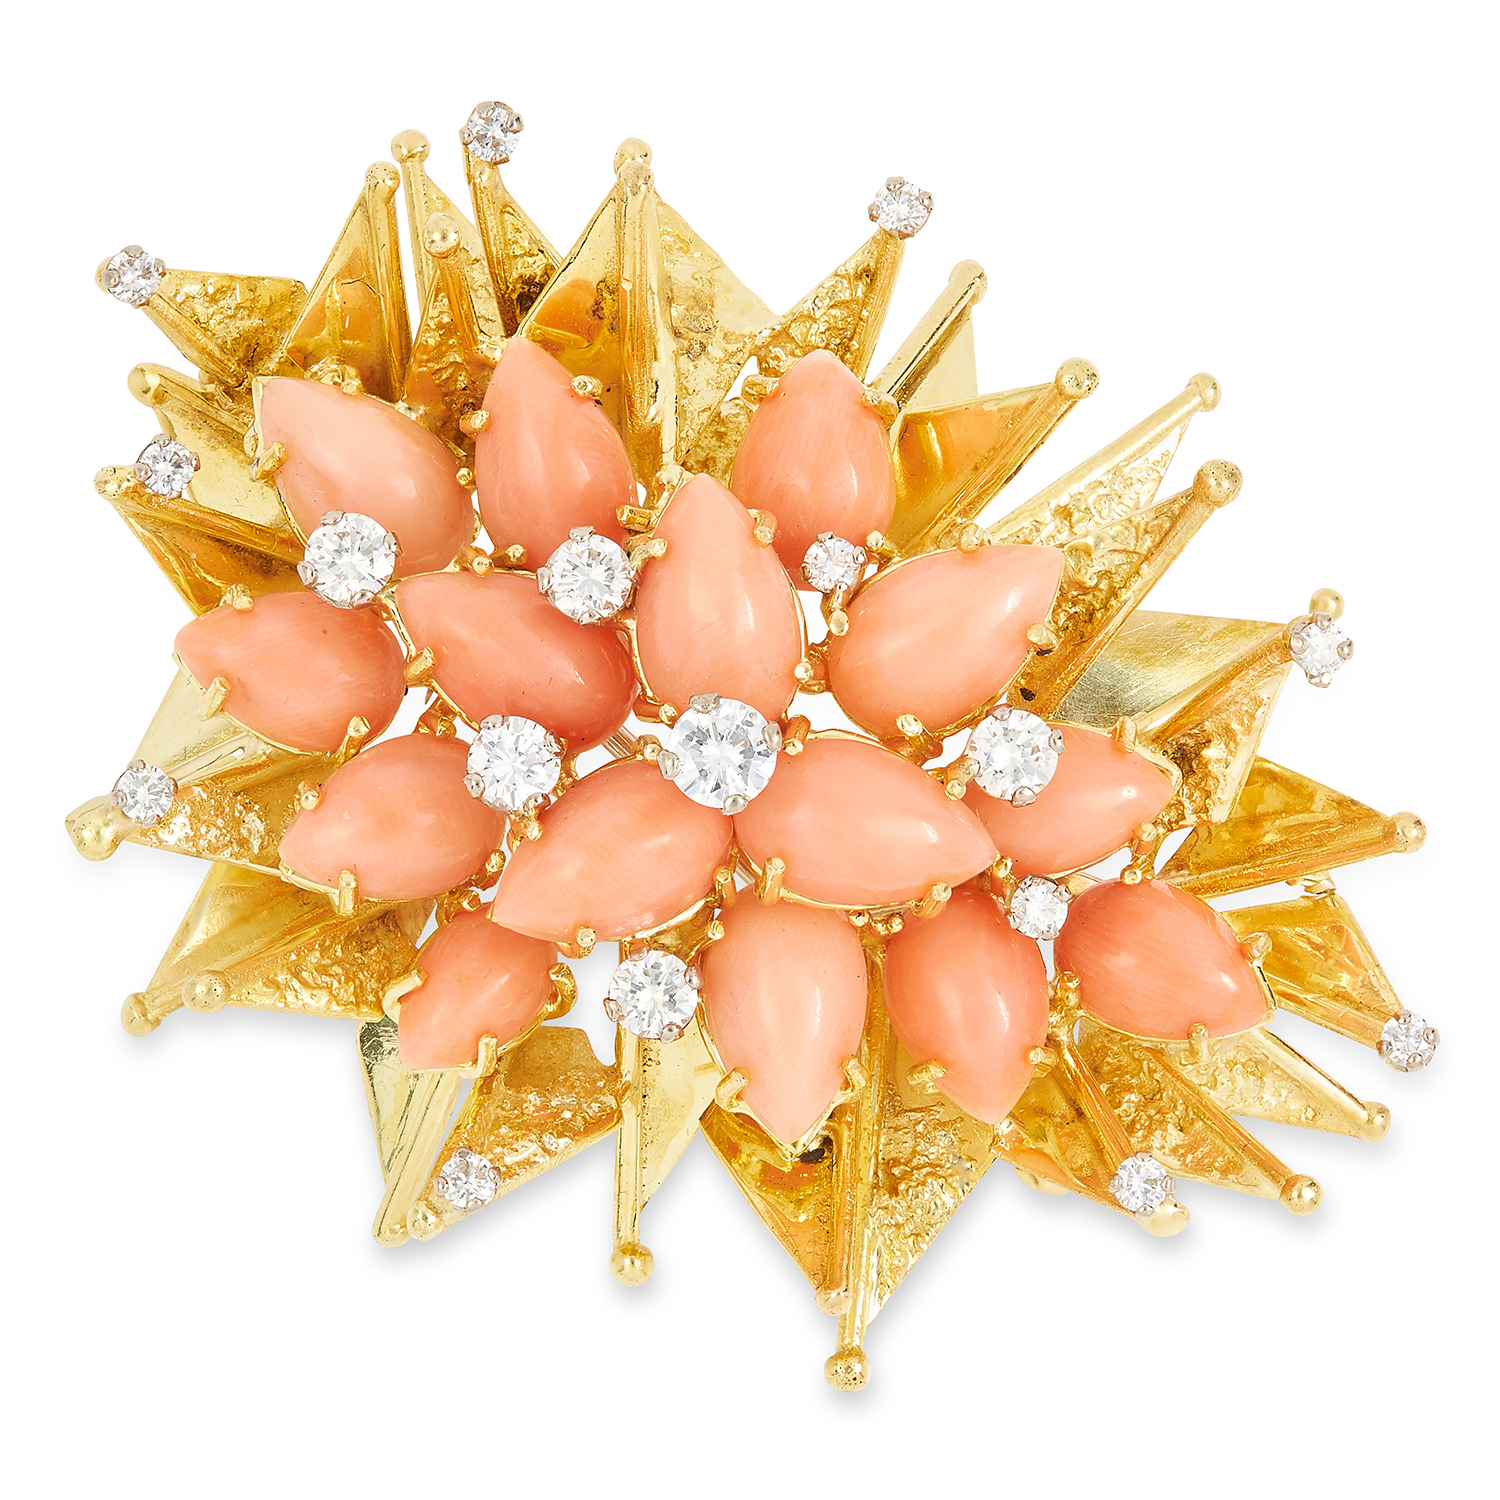 Los 34 - VINTAGE CORAL AND DIAMOND BROOCH, ANDREW GRIMA 1973 set with coral cabochons and round cut diamonds,